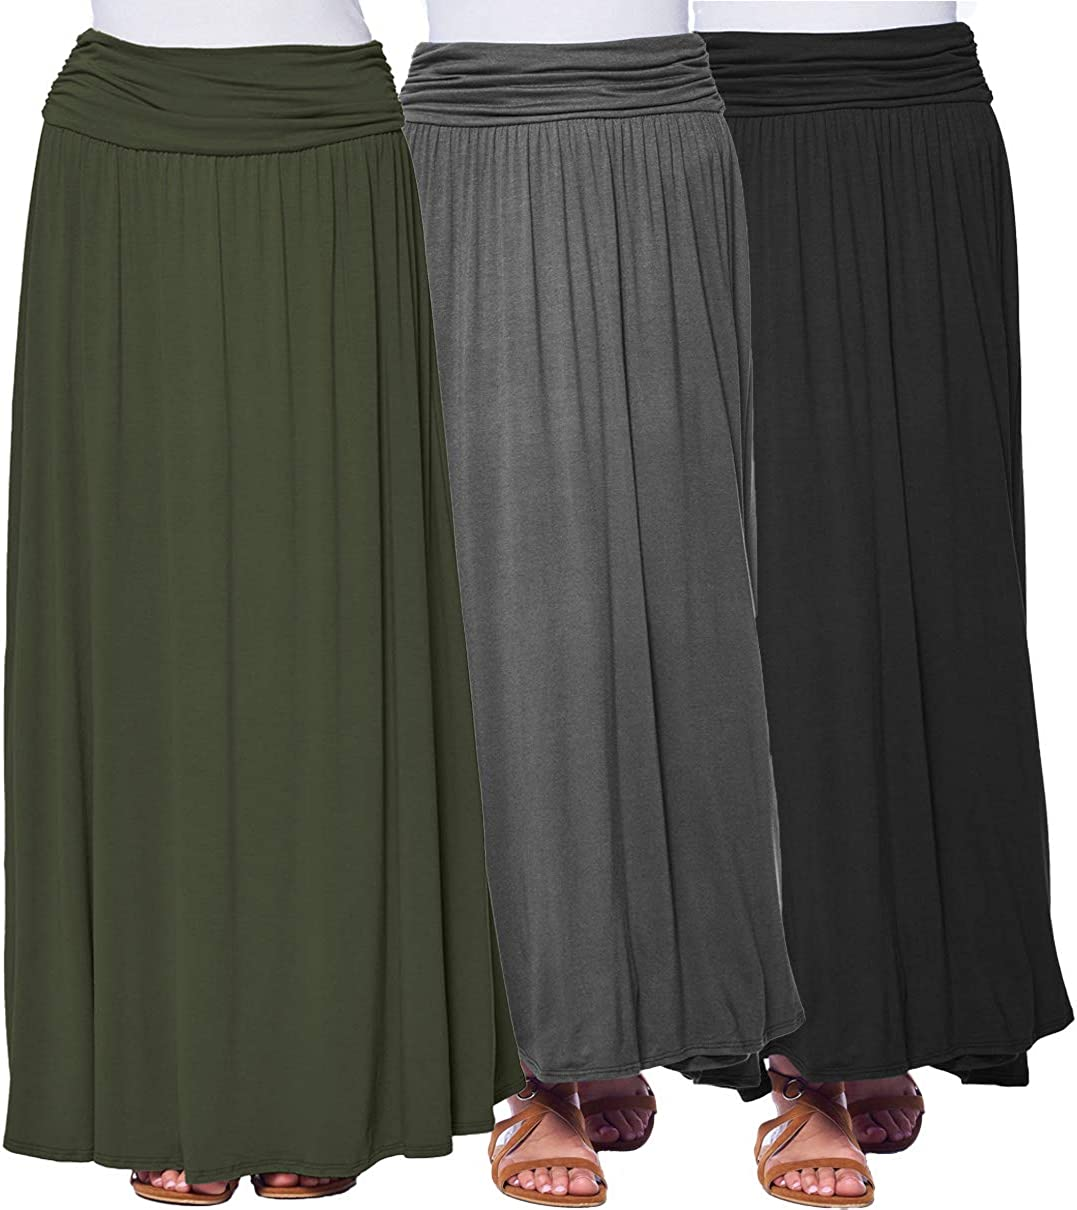 Max 59% OFF Isaac Liev Lowest price challenge Women's Maxi Skirt – Pack 3 Fold Waisted High Ruched